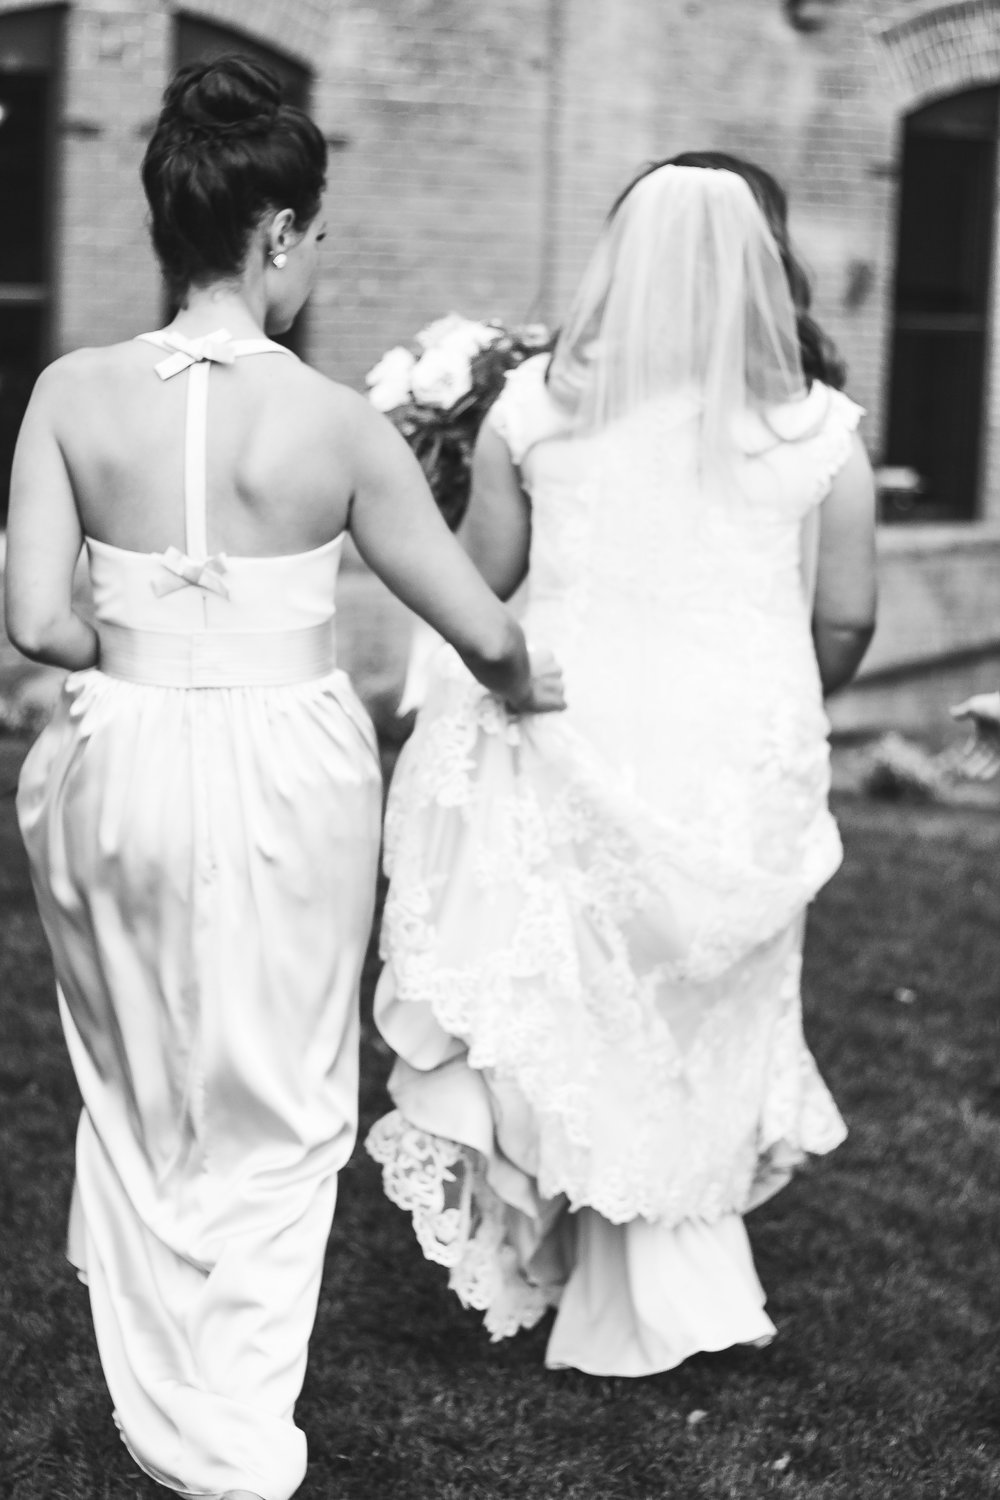 soft wedding image bridesmaid bride wedding photo